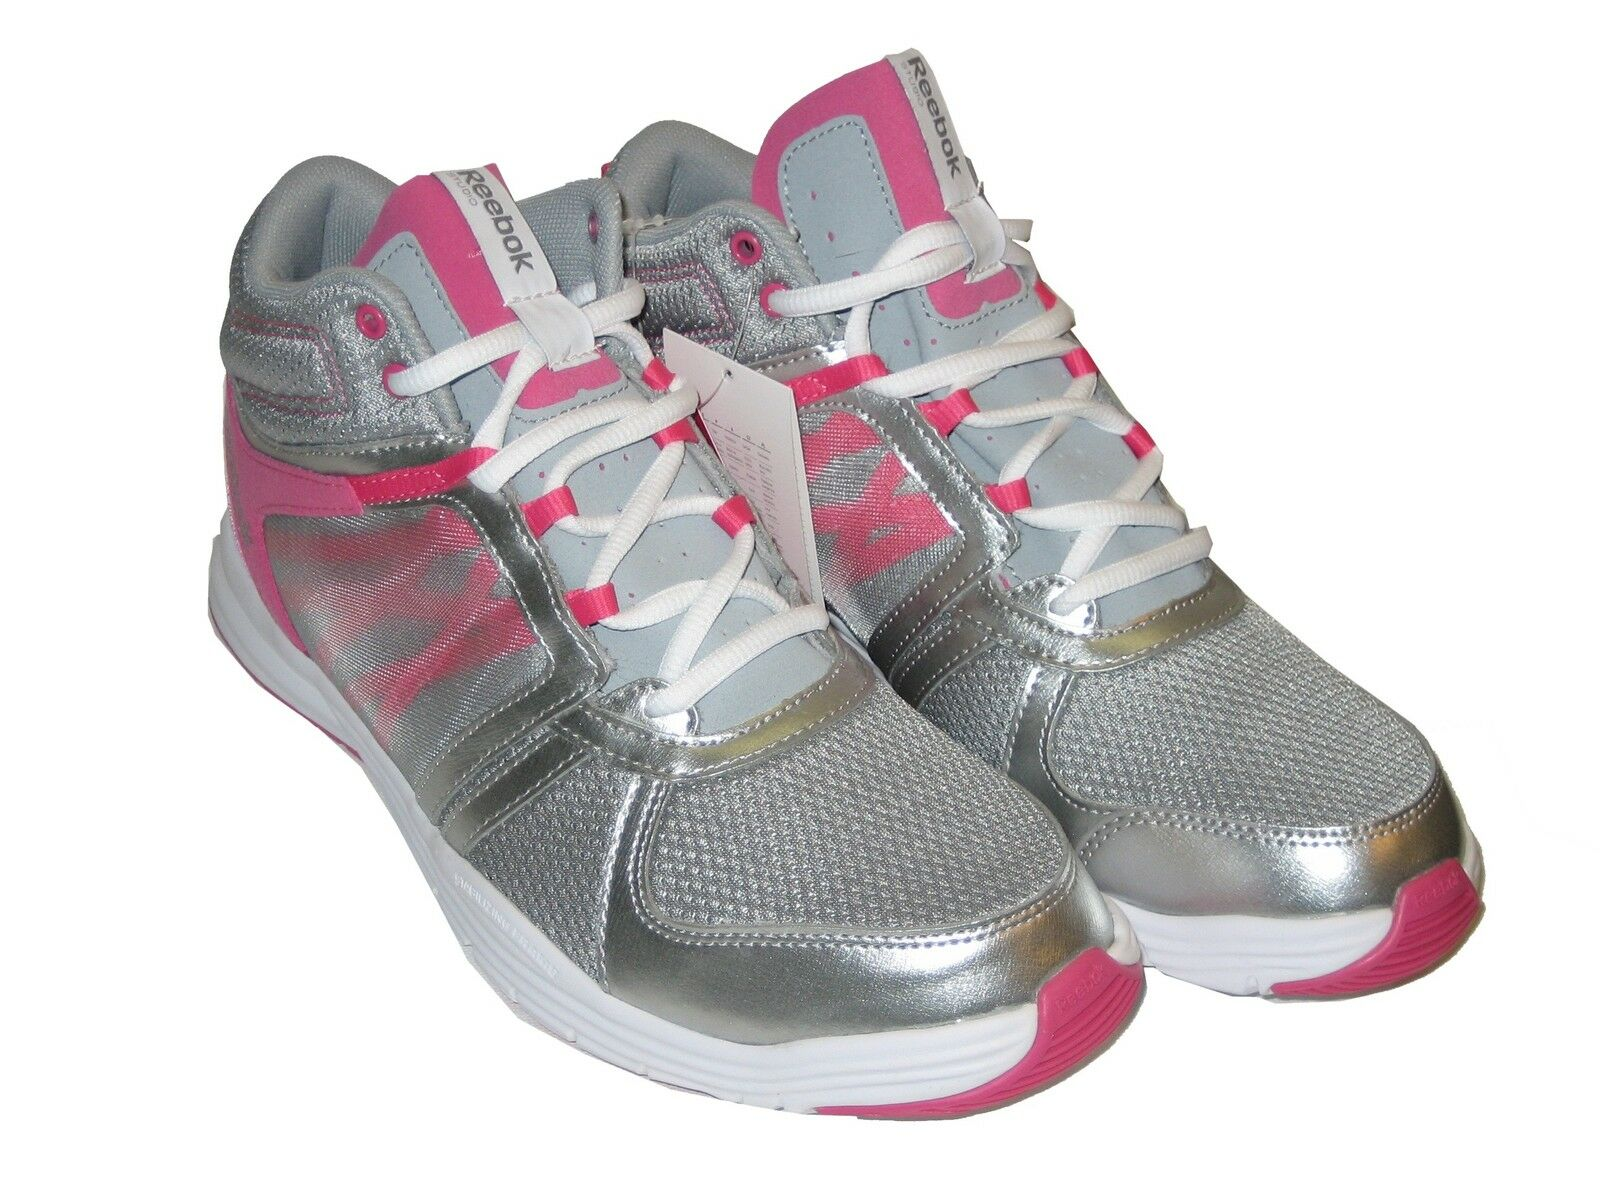 Reebok Sublite Studio Flame M42411 Grey Silver Pink White Fitness Fitness Fitness Schuh Women 7311d3